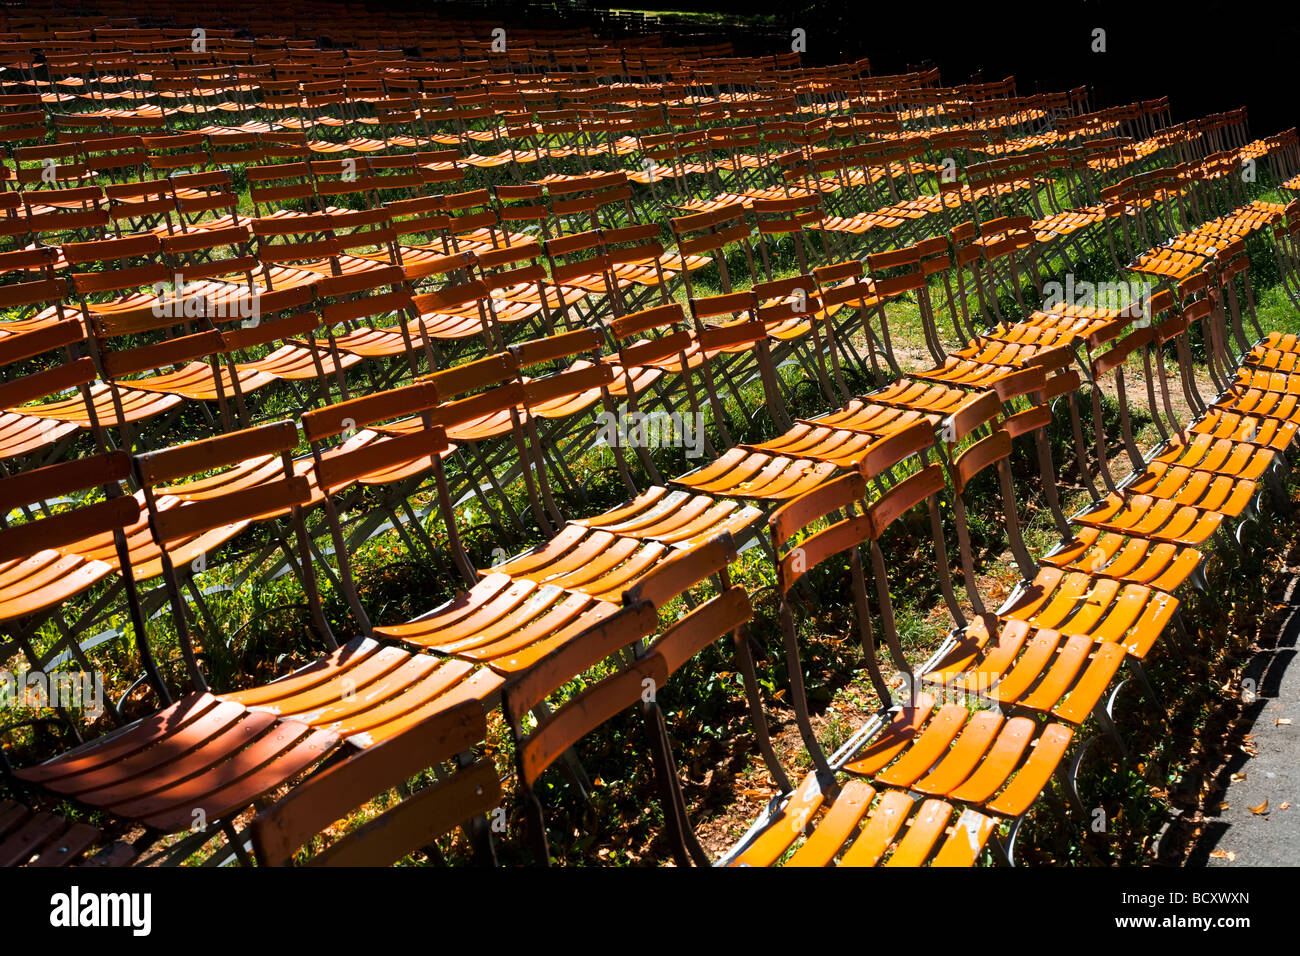 Chairs prepared for a concert during summer - Stock Image